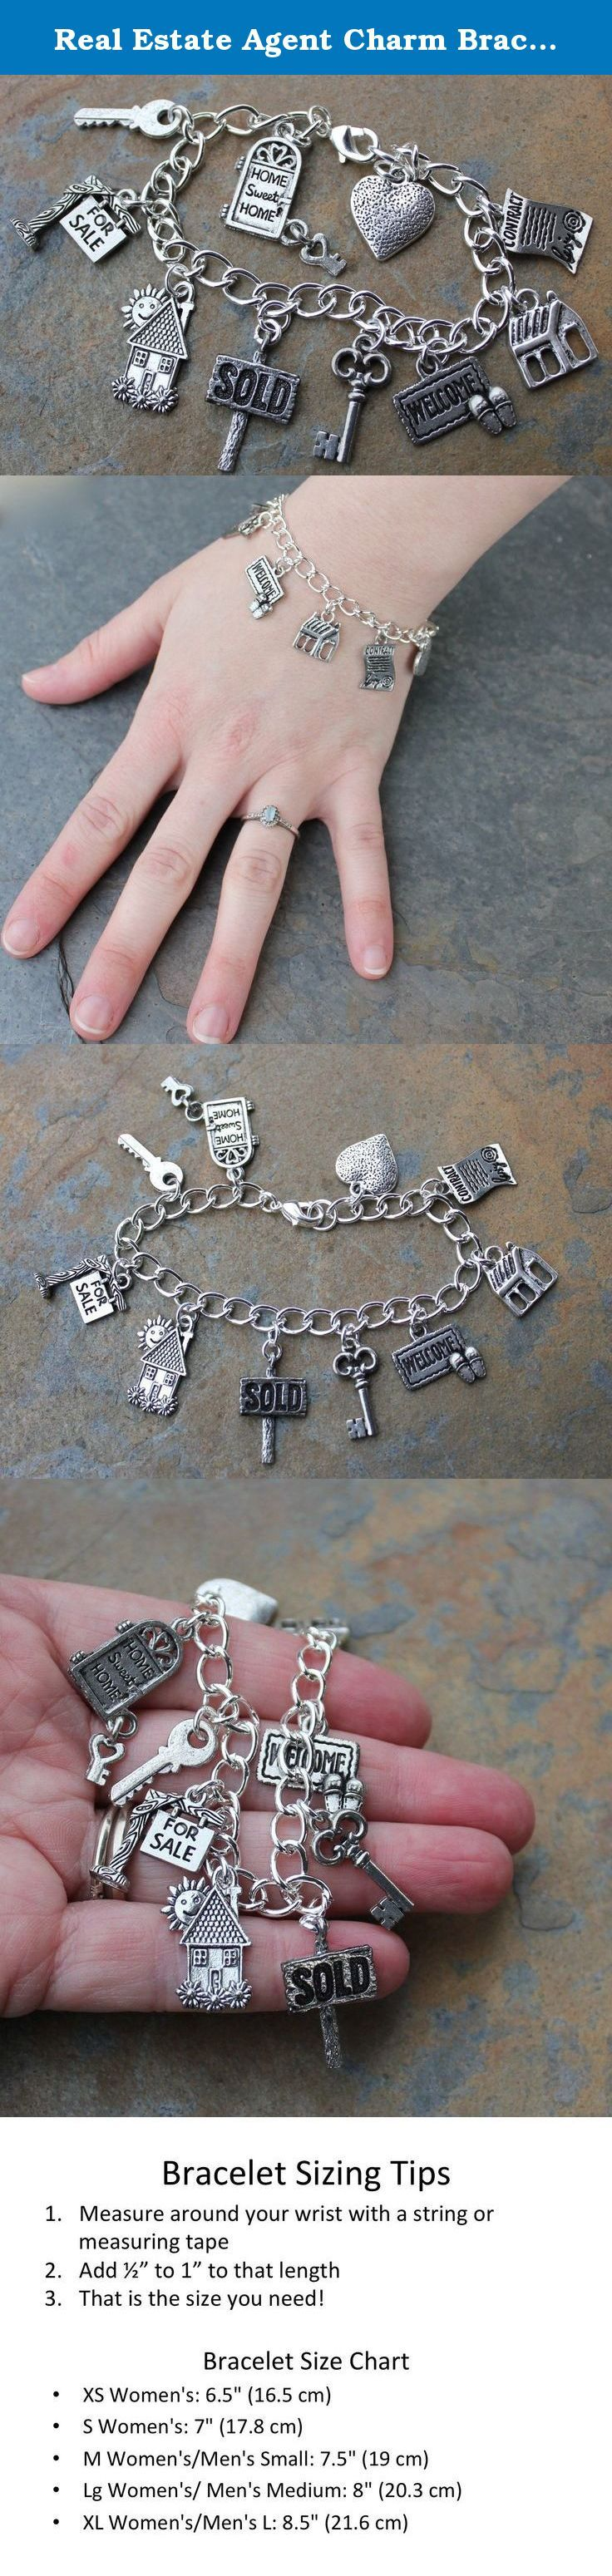 Real Estate Agent Charm Bracelet- Silver Plated Chain with Pewter House, for Sale Sign, Sold, Key Charms - Size XS S M L XL. Here is a perfect charm bracelet for a realtor or new homeowner! It features chunky silver plated chain and 10 pewter charms including home sweet home door with key, modern key, for sale sign, cottage, sold sign, old fashioned key, welcome mat, house, contract, and heart.. Very cute and fun! The pewter charms are made in the USA and contain no lead or nickel. The...